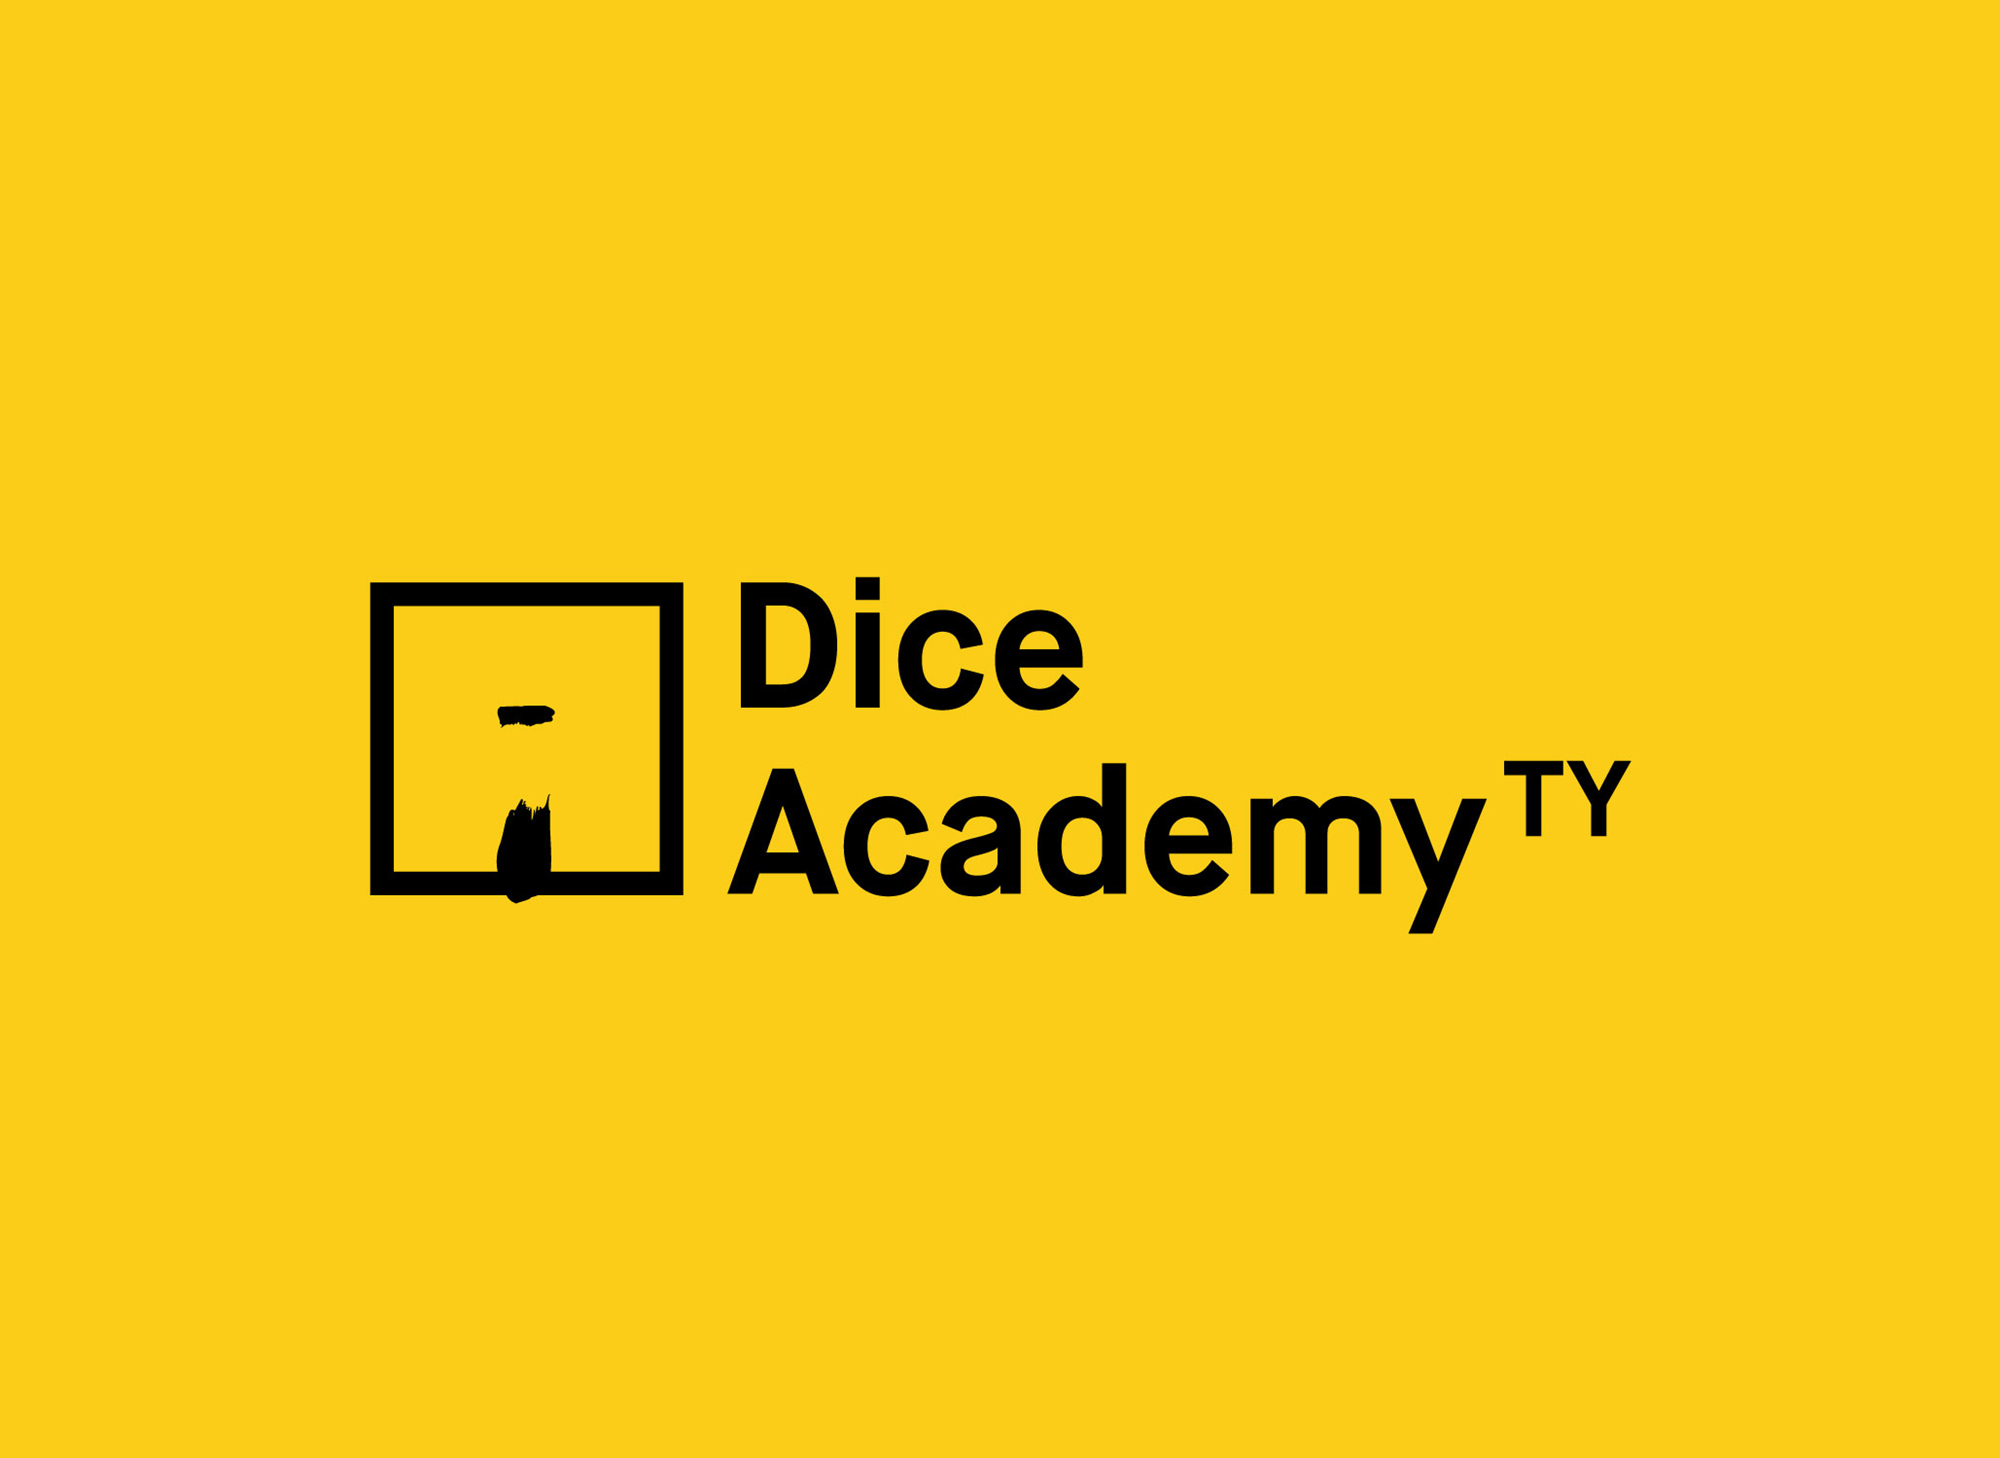 Cover image: Dice Academy